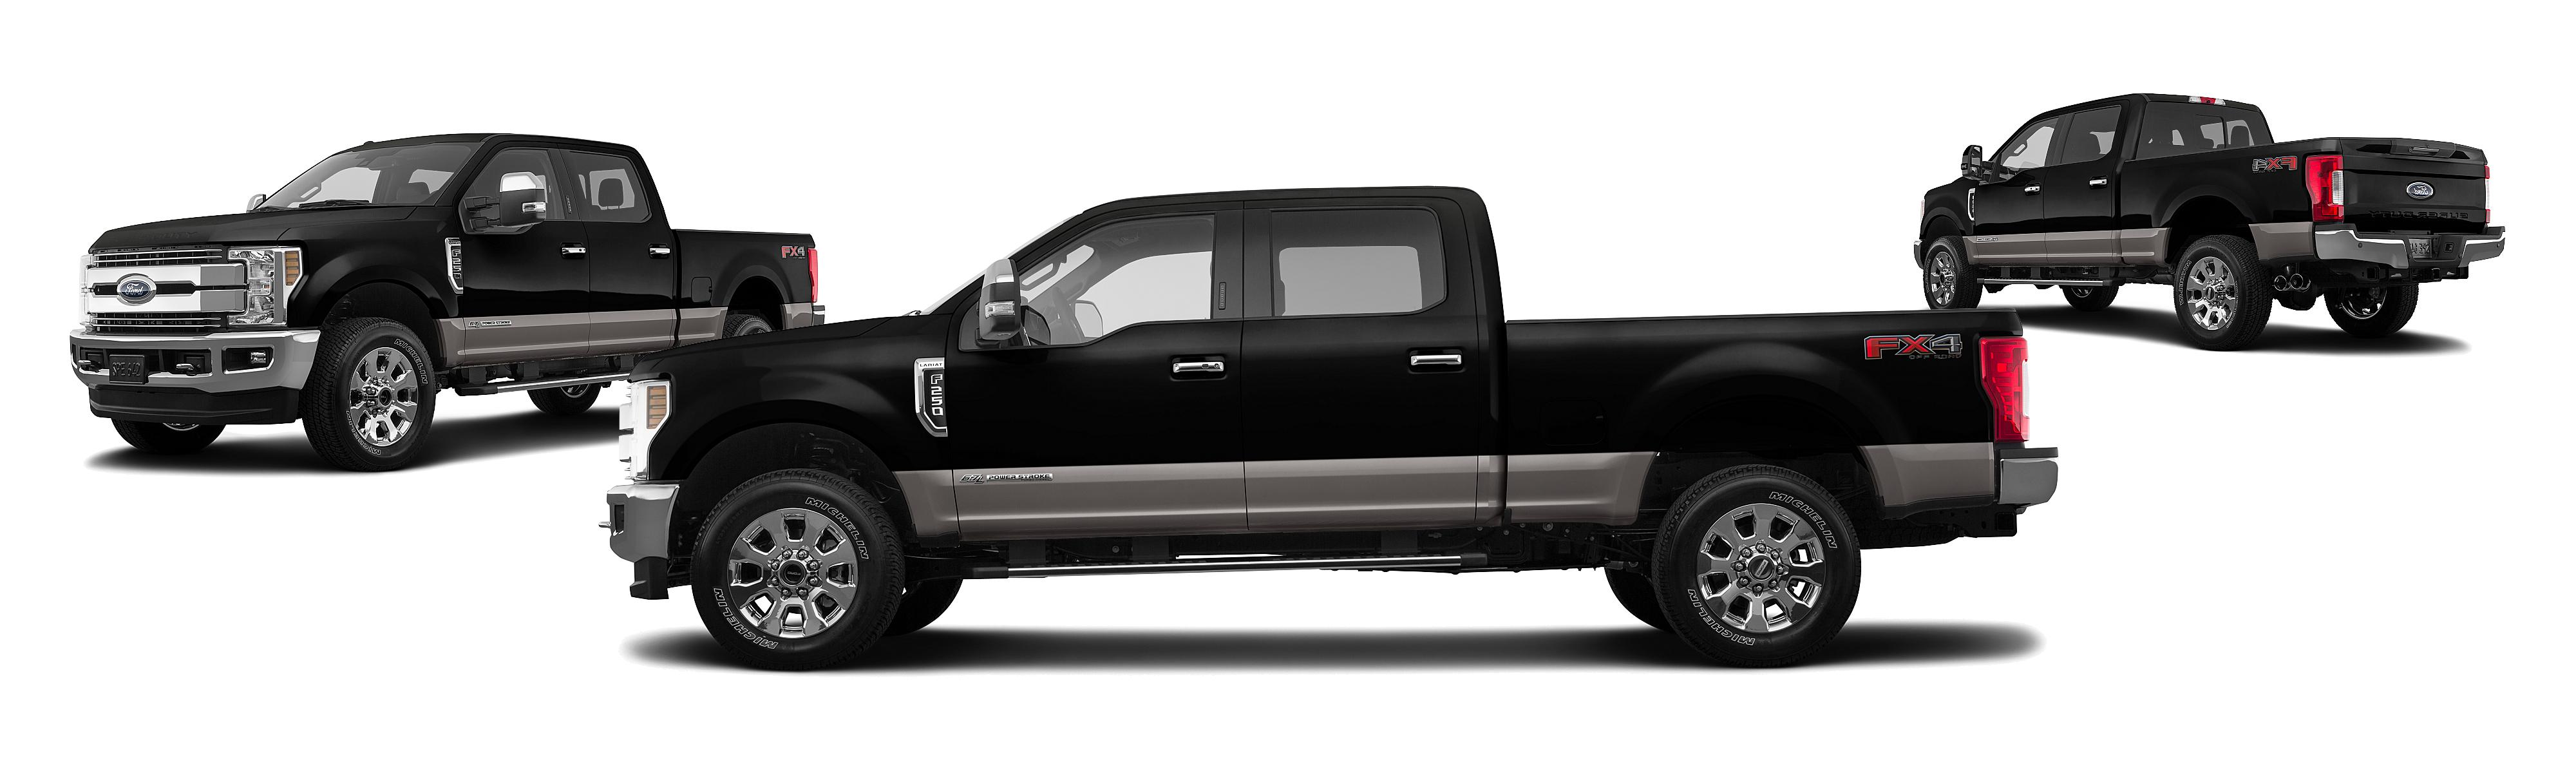 pin a trisha new purchase to of their ranch king chris and congratulations ford on